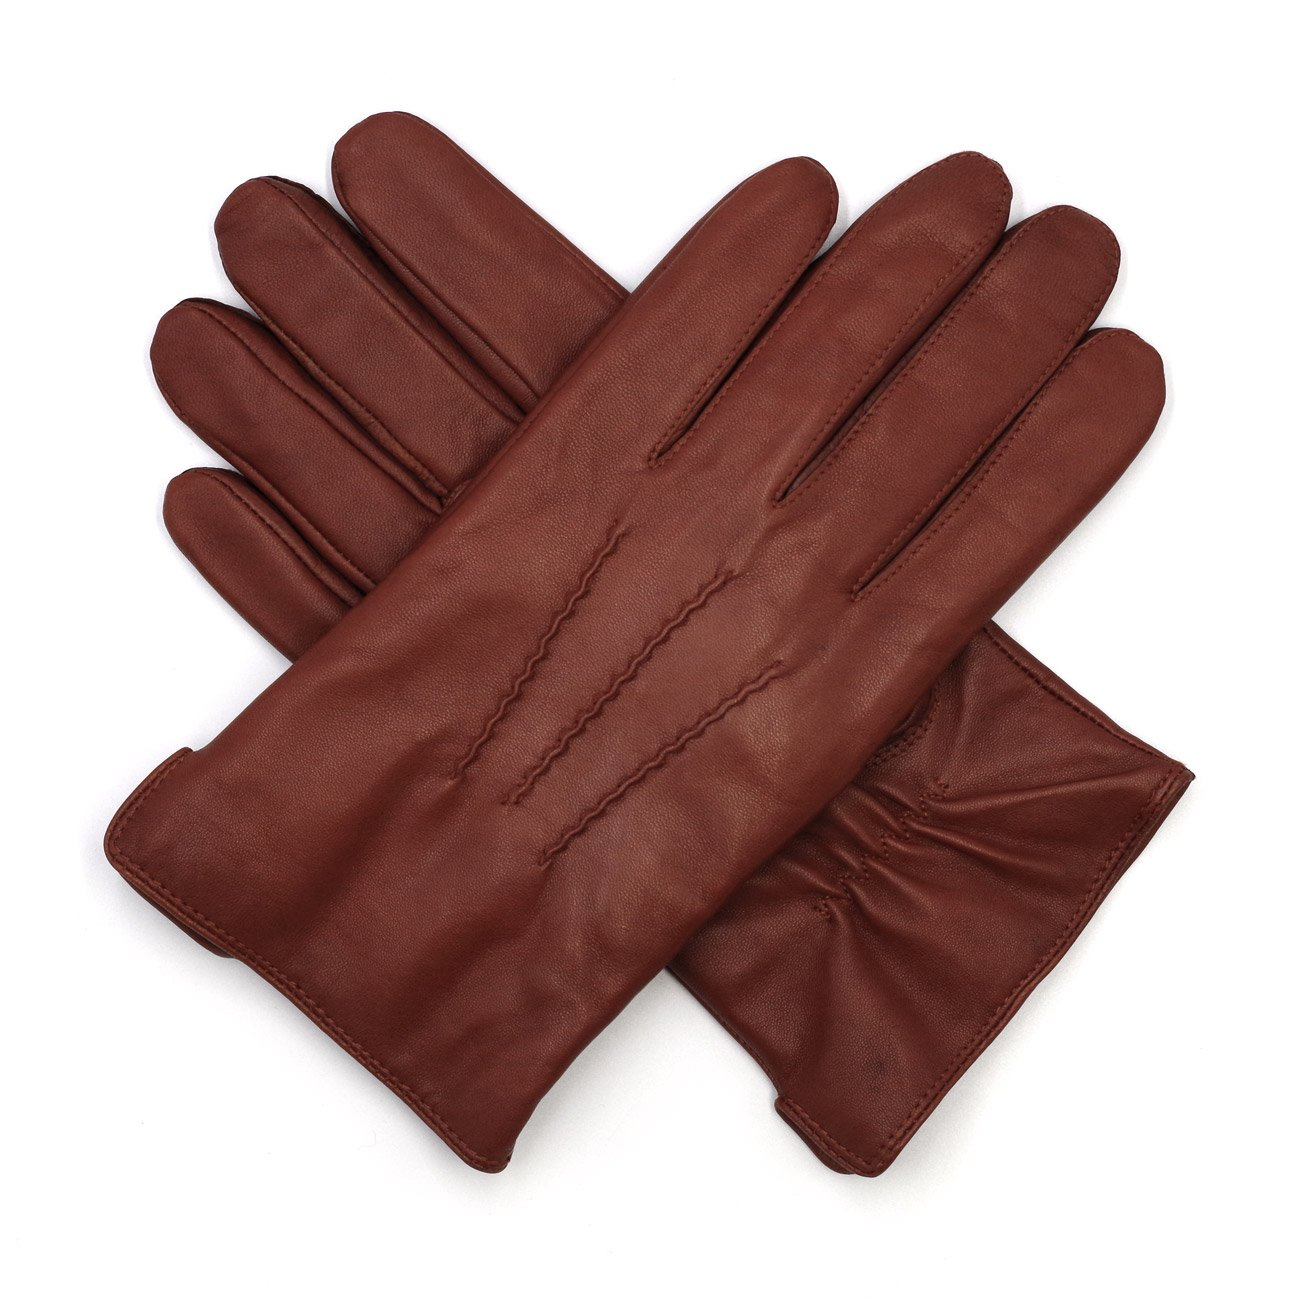 e3846d5b6 Harssidanzar Mens Luxury Italian Sheepskin Leather Gloves Vintage Finished  Cashmere Wool Lined at Amazon Men's Clothing store